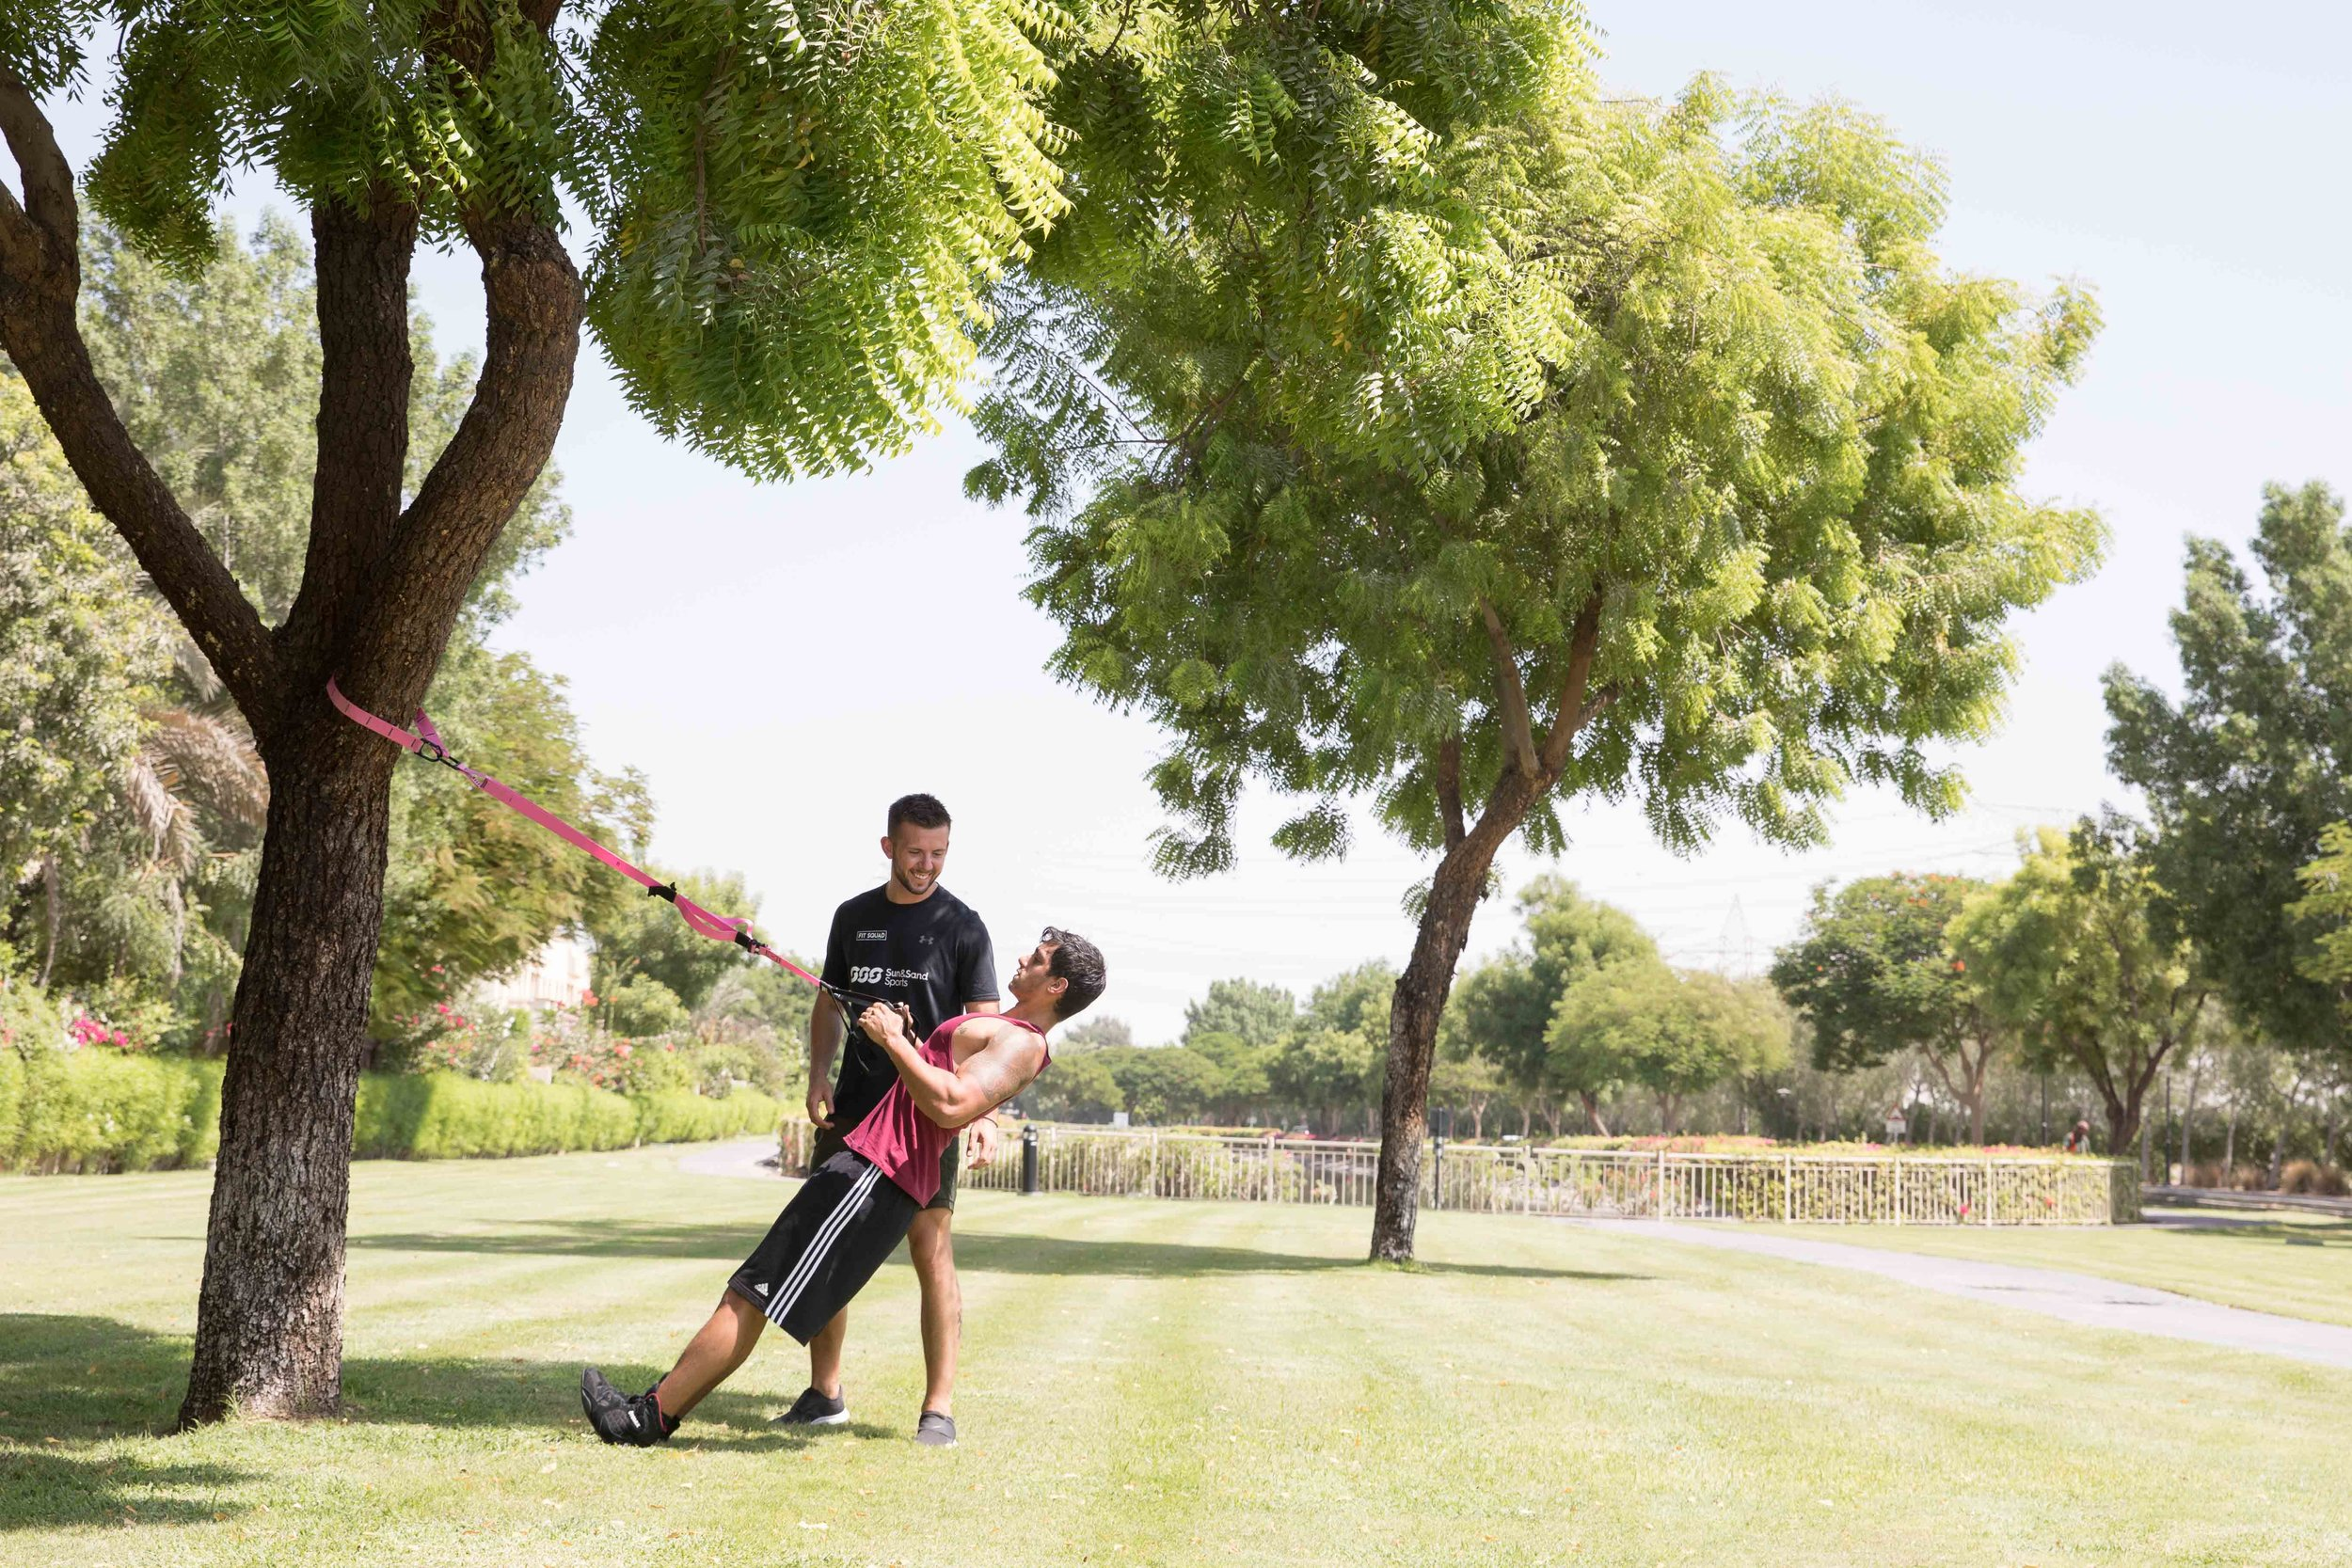 trx-suspension-personal-training-with-fit-squad-dxb.jpg